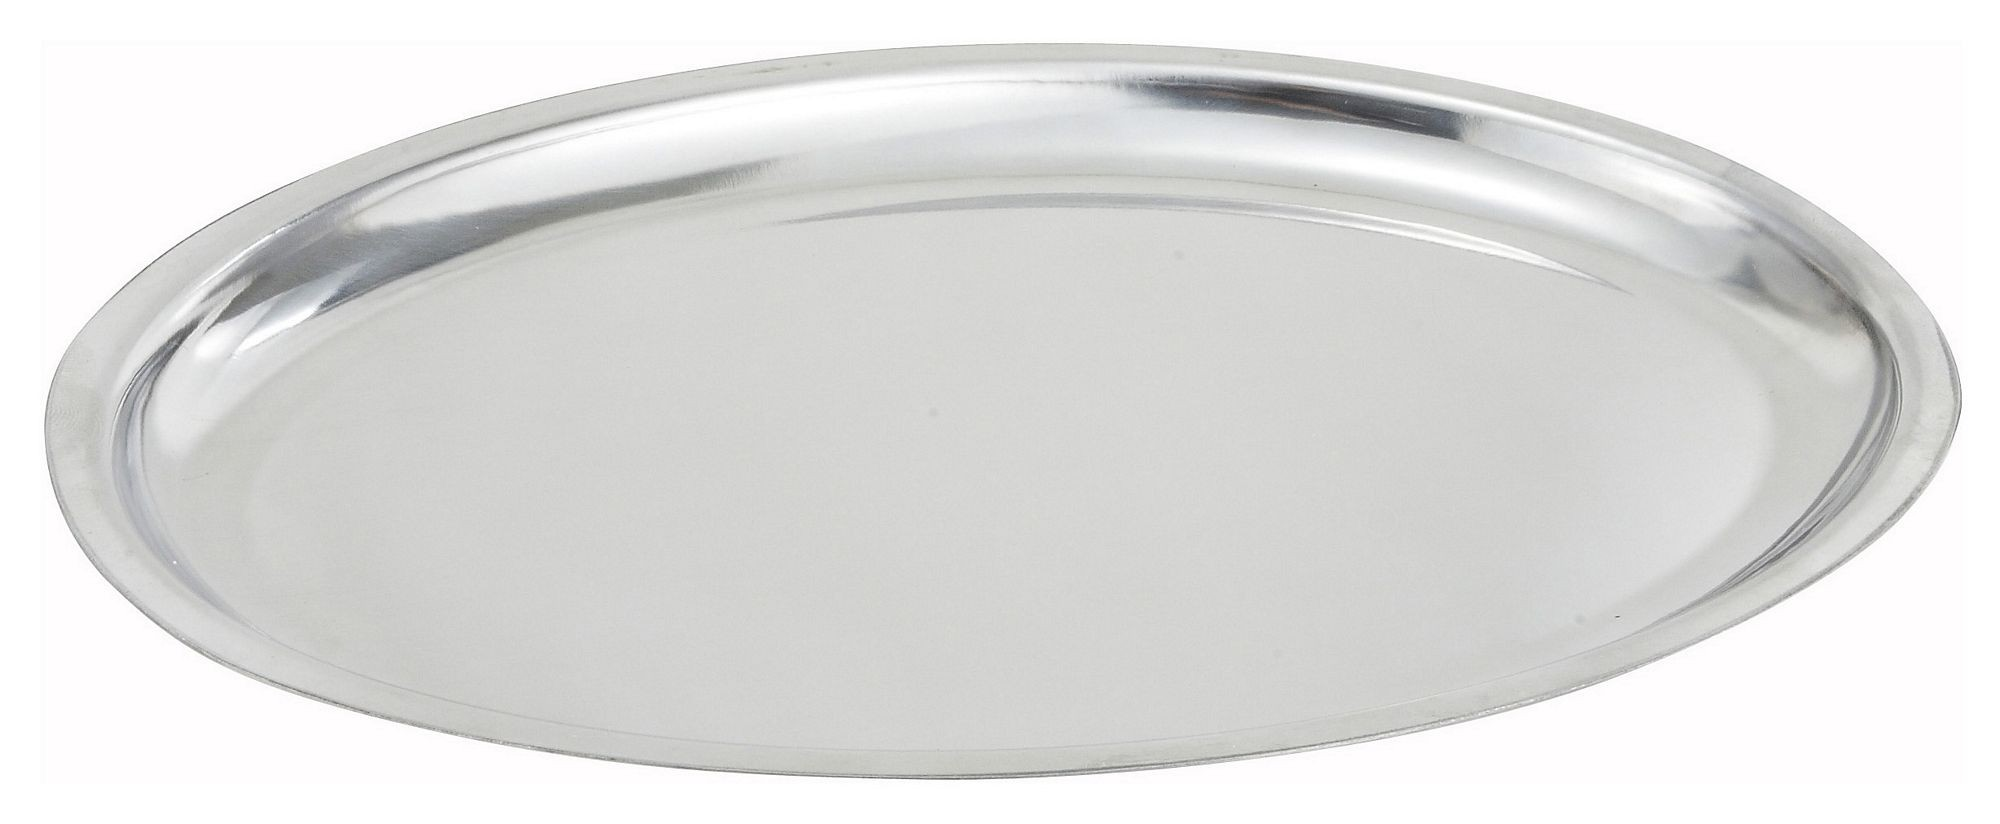 Winco SIZ-11 Stainless Steel Oval Sizzling Platter Only, 11""